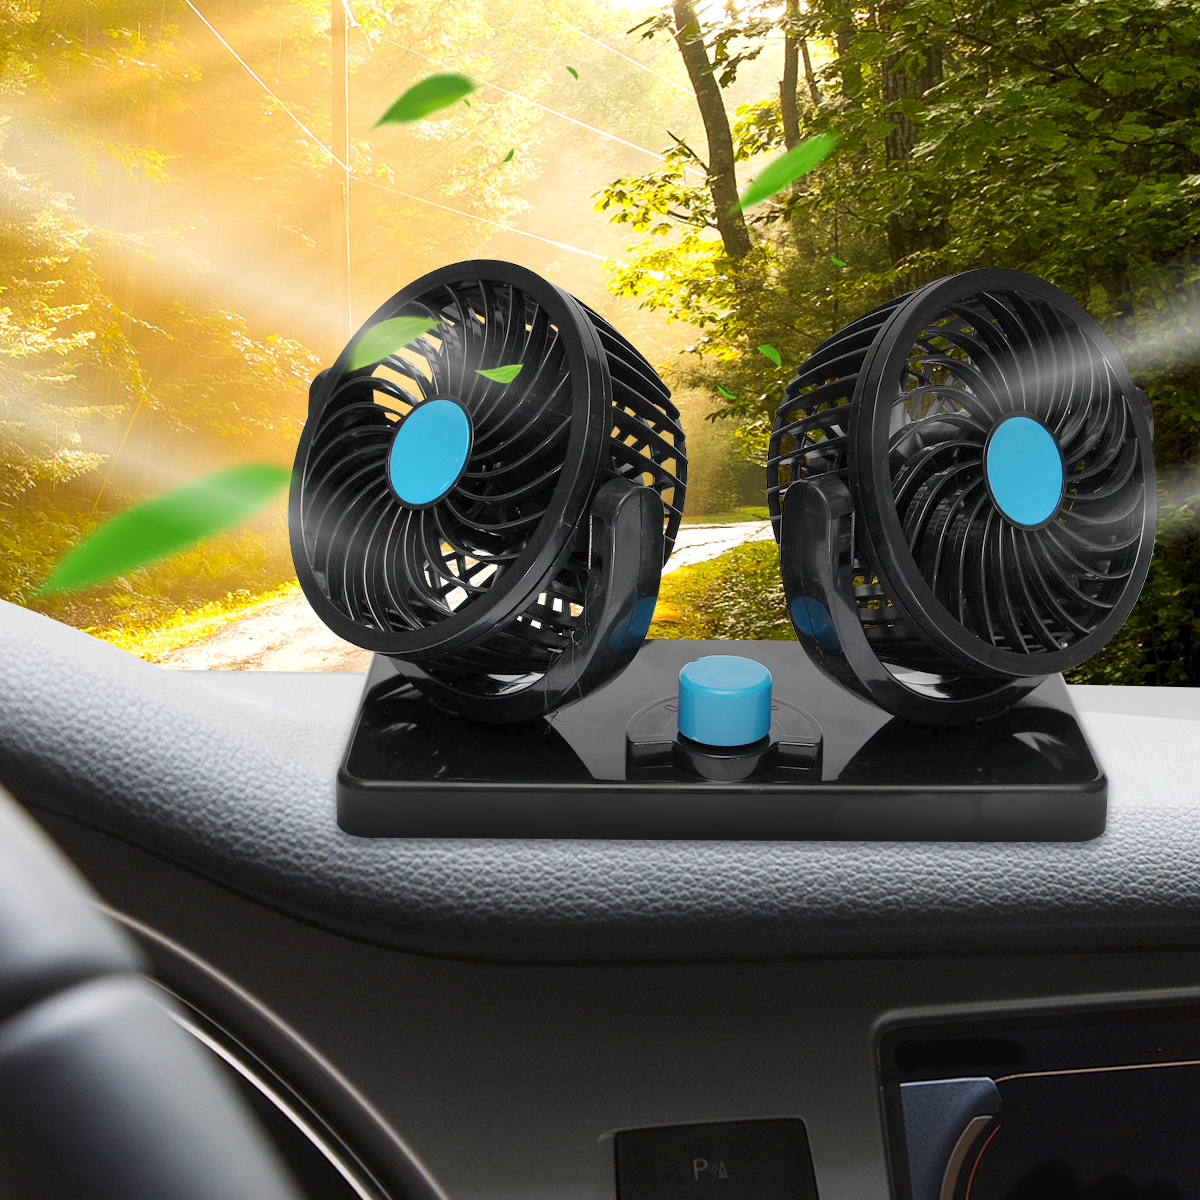 12V Car Mini Electric Fan 2 Head 360 Degree Rotating Low Noise Summer Conditioner Portable Adjustable Car Air Cooling Fan 12v car mini portable suction cup air fan 360 rotating strong wind cooler power by cigarette lighter socket car air condition